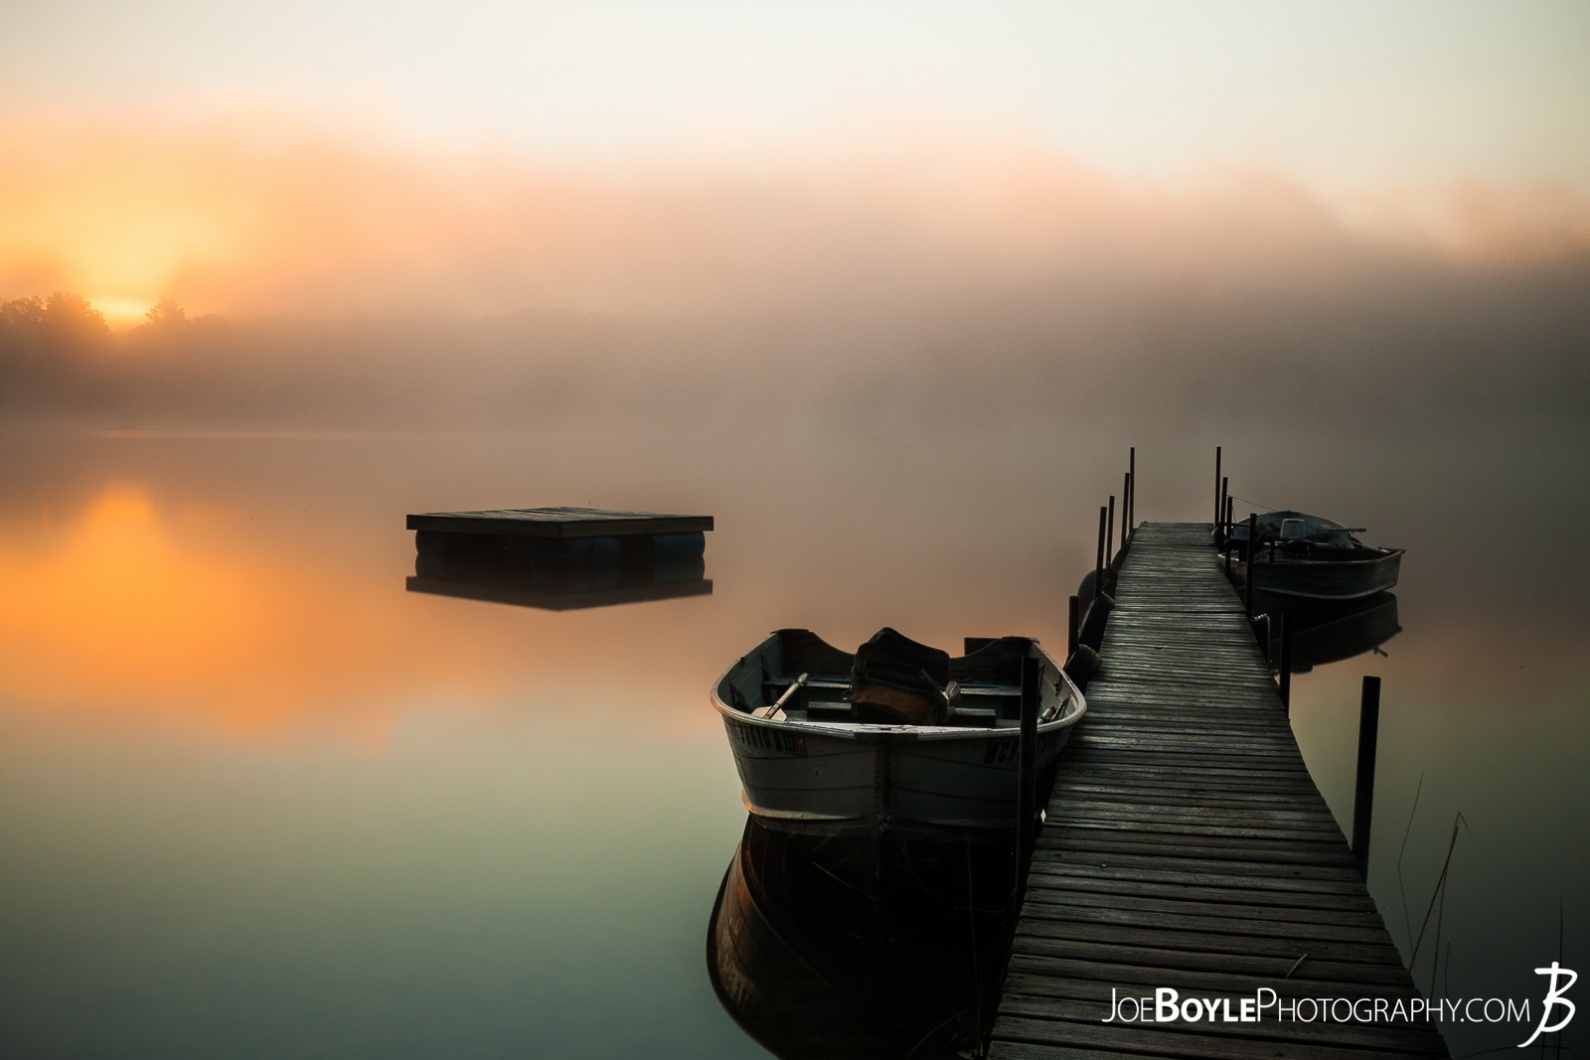 calm-misty-lake-with-pier-and-boats